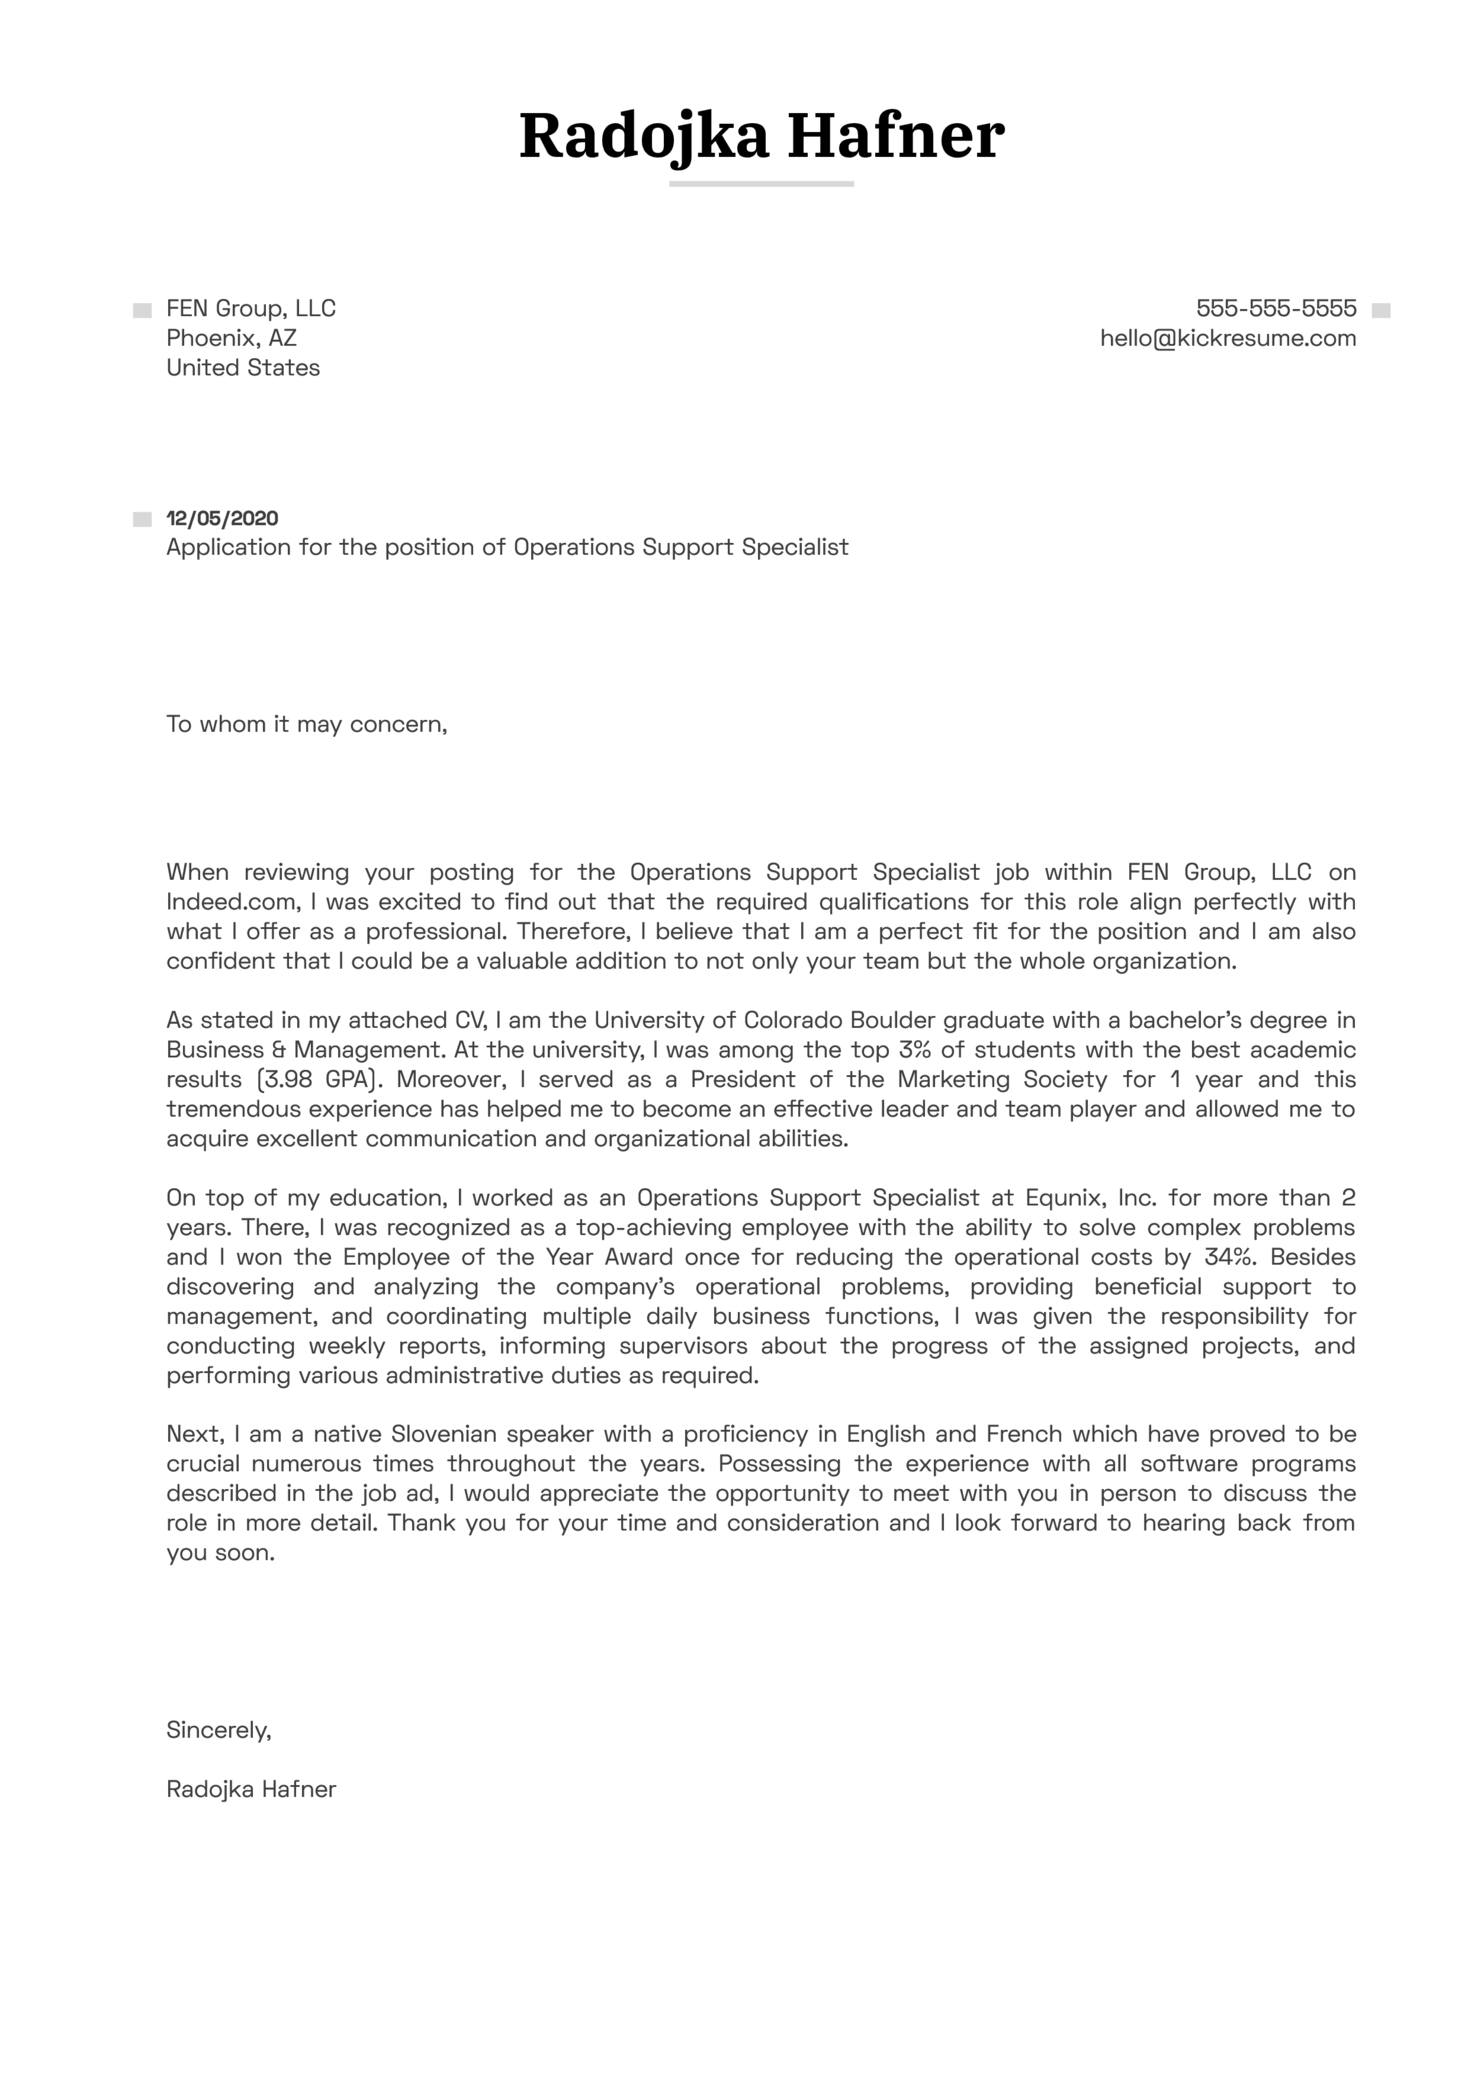 Operations Support Specialist Cover Letter Sample